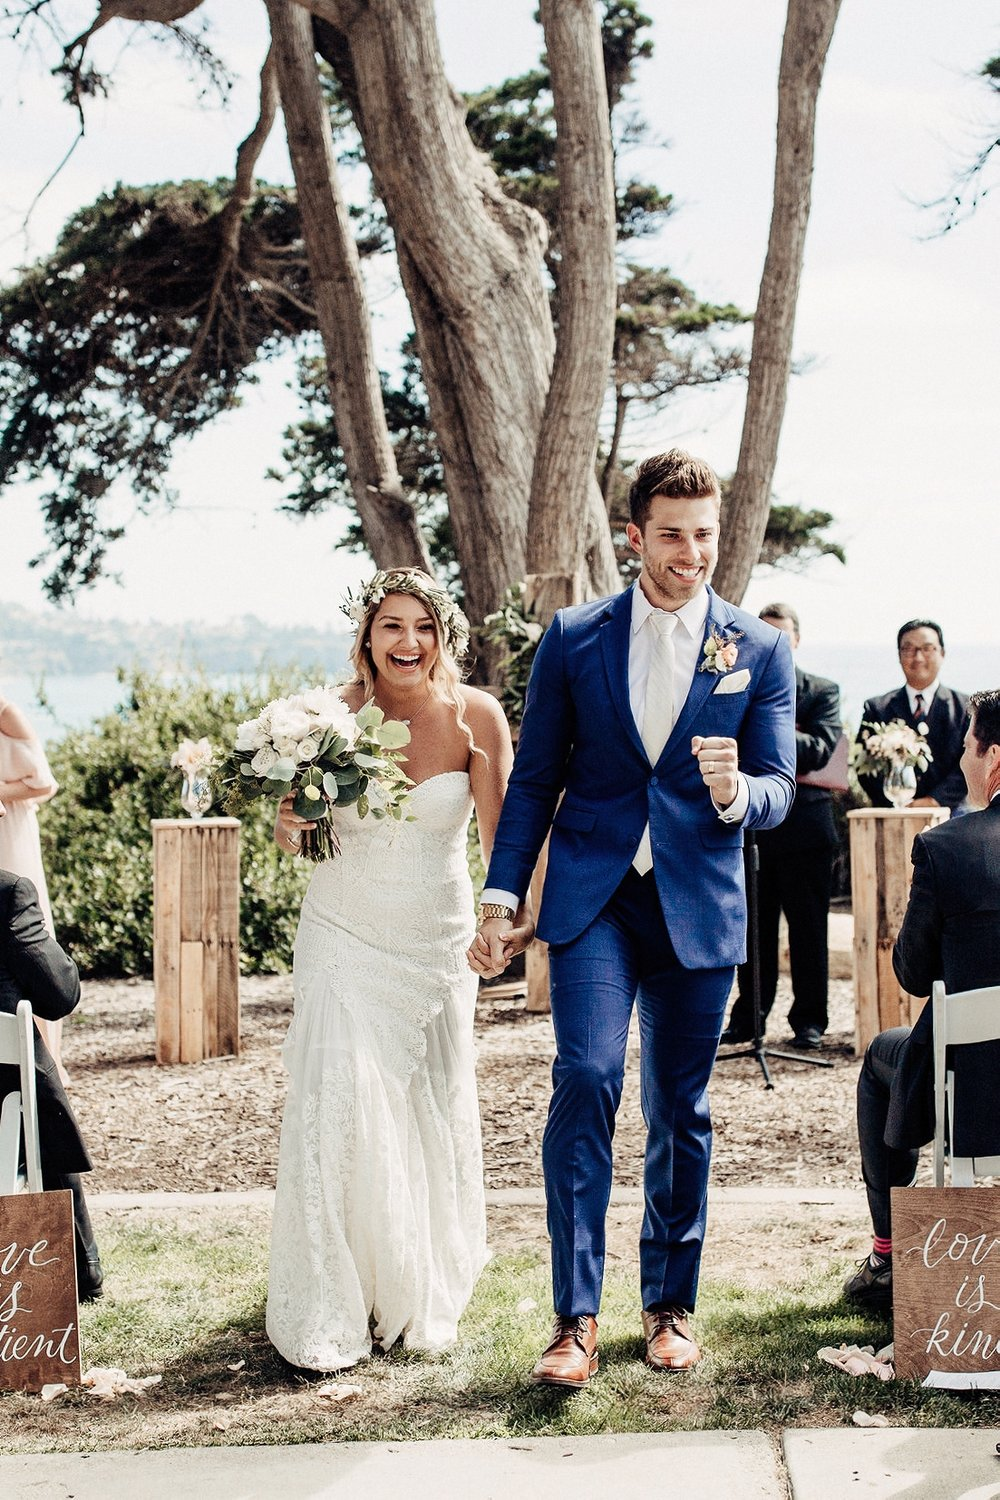 Martin Johnson House Wedding |La Jolla, California | Jess + Brock